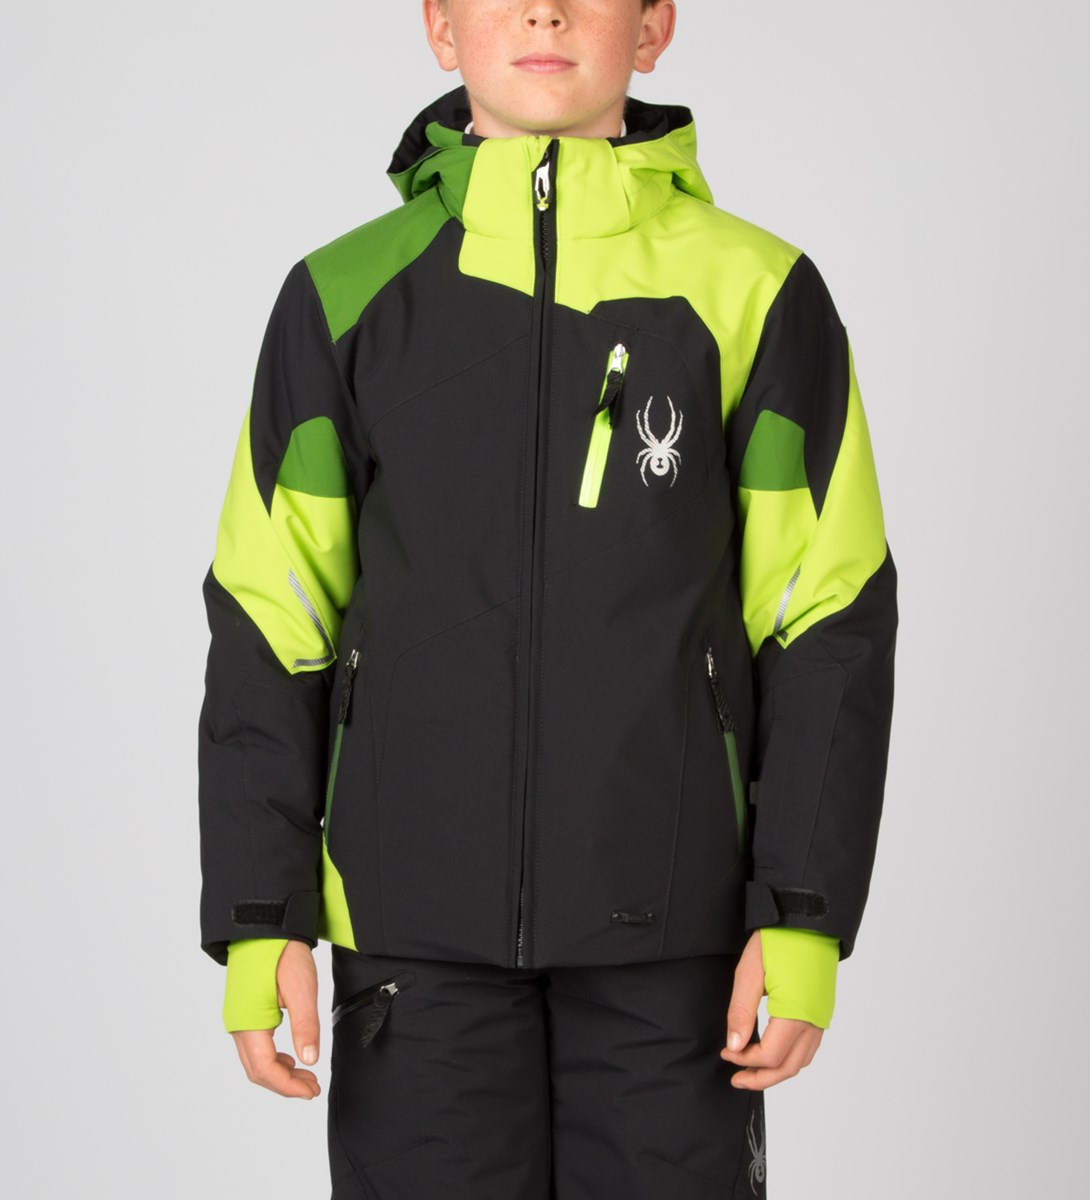 53bfab230 Spyder Boys Leader Ski Jacket in Black/Theory Green